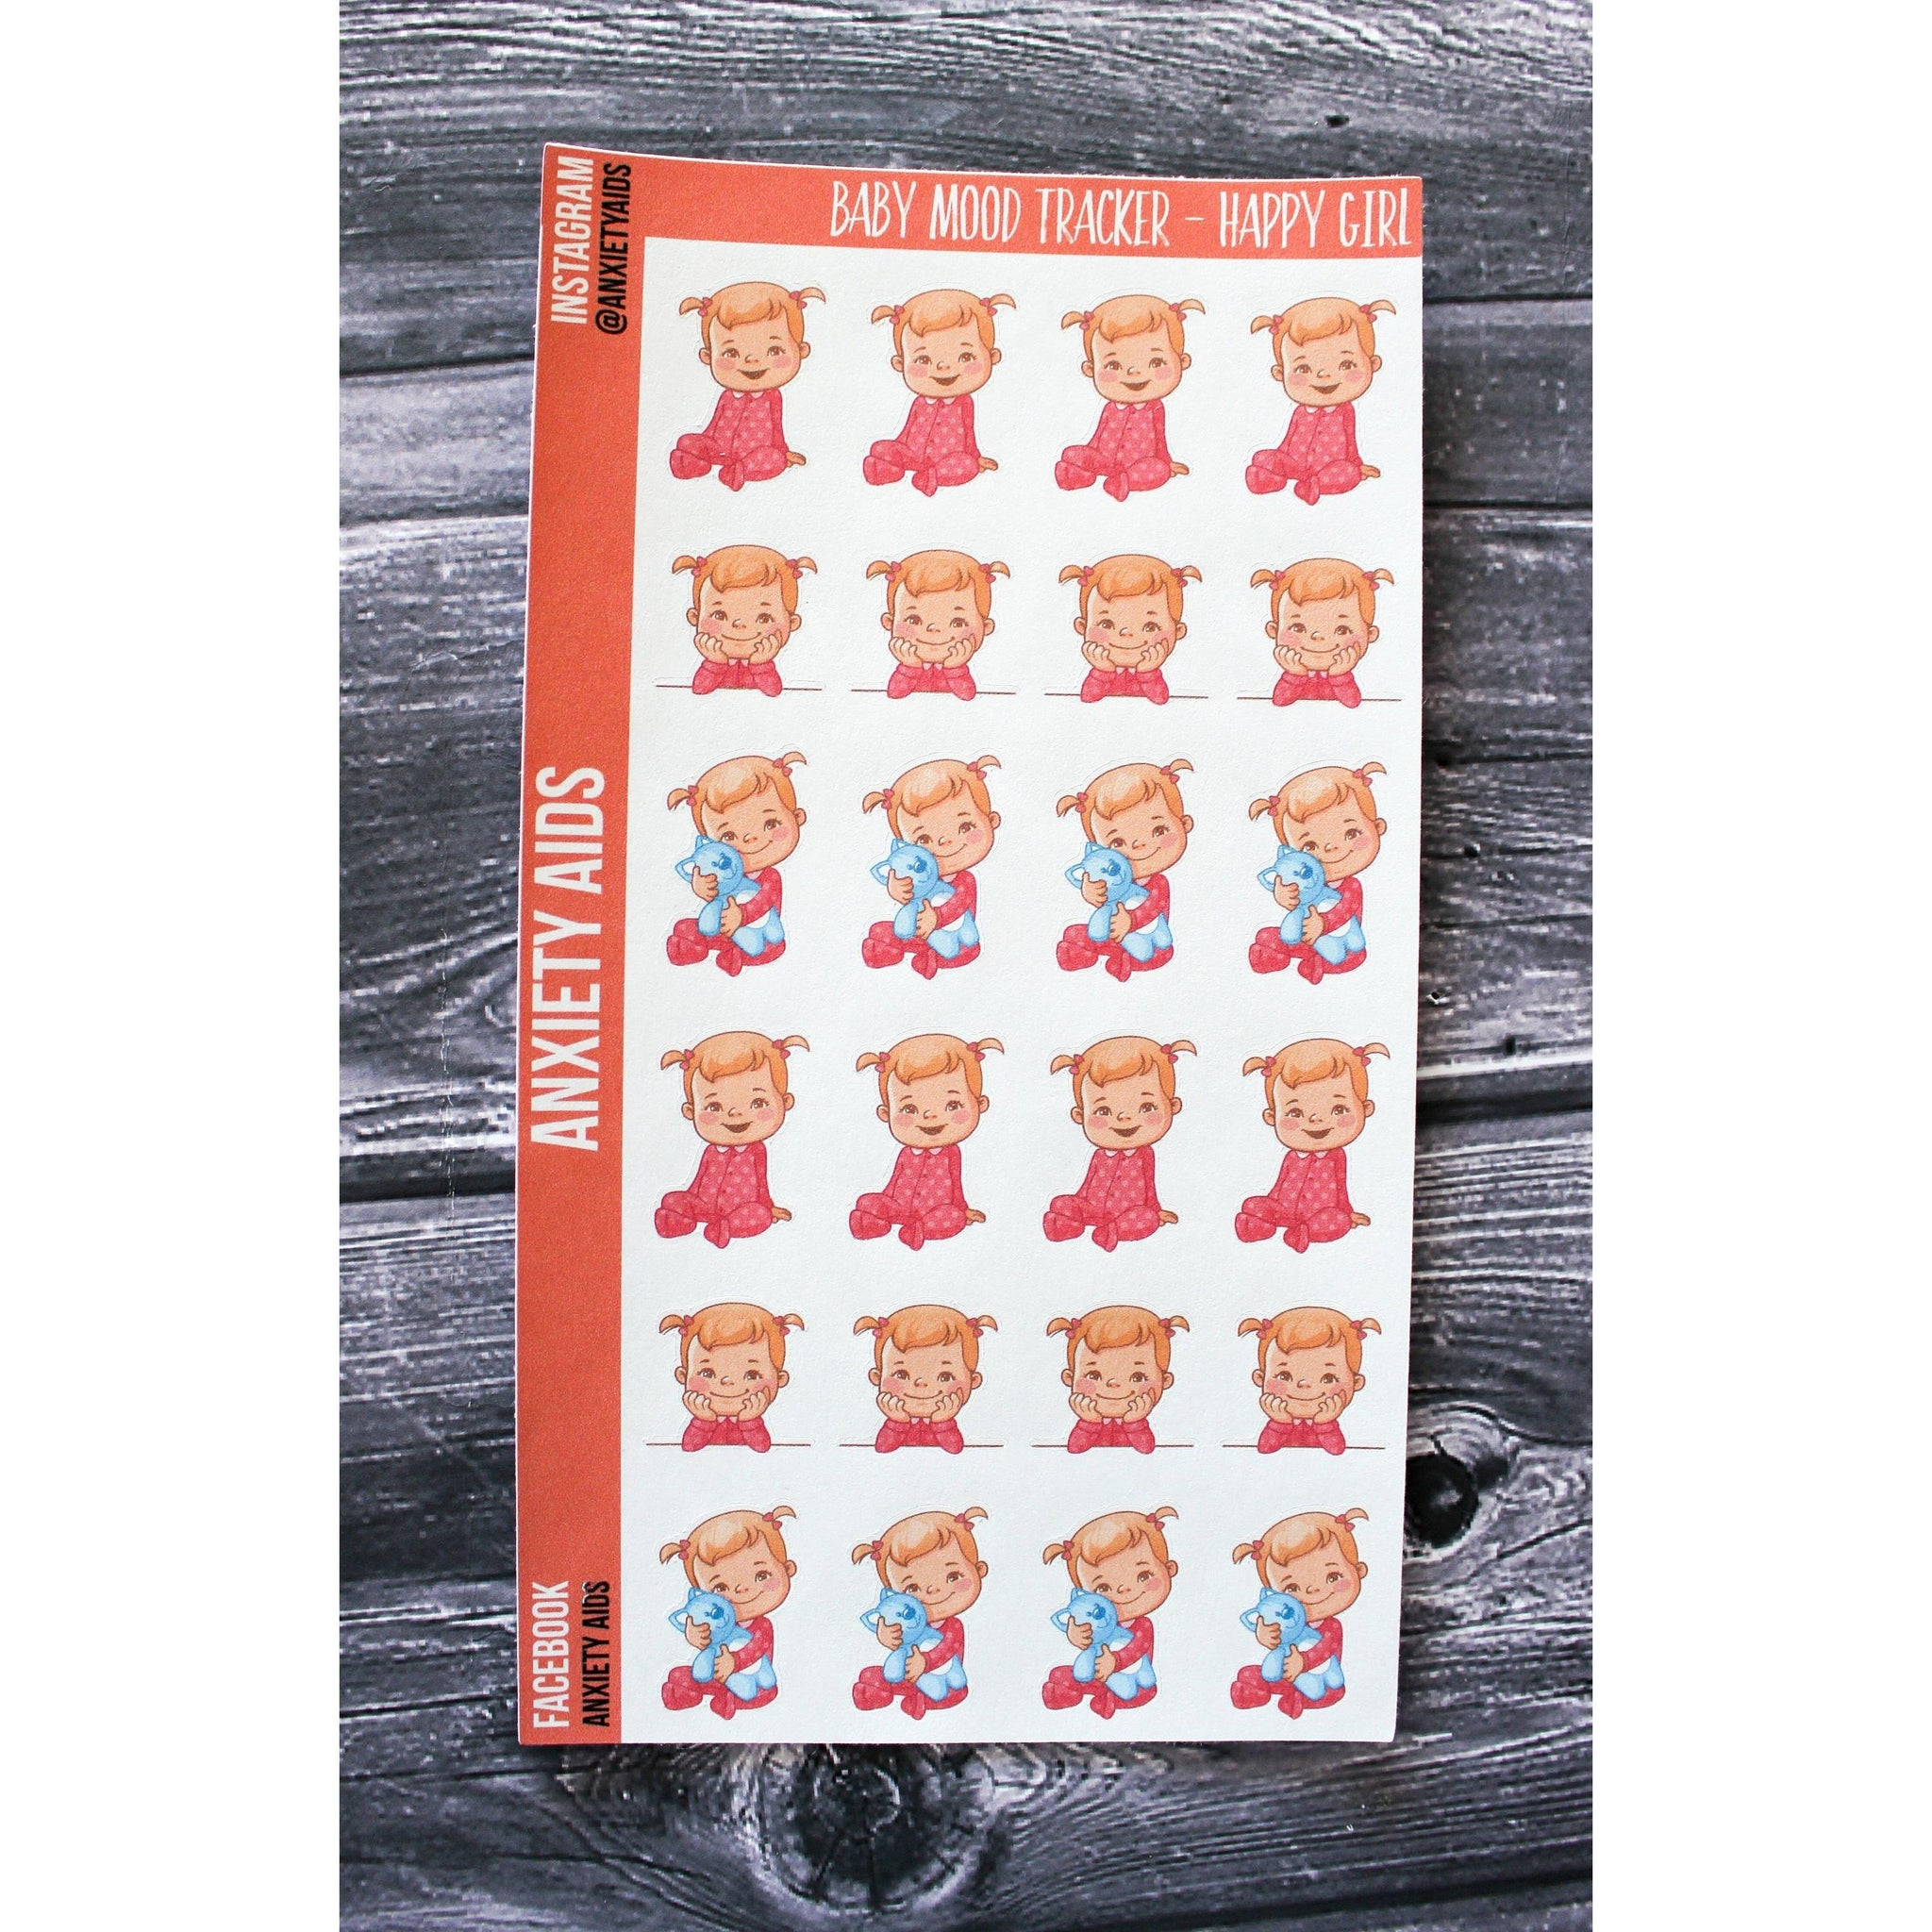 Happy Girl Baby Mood Tracker Planner Stickers